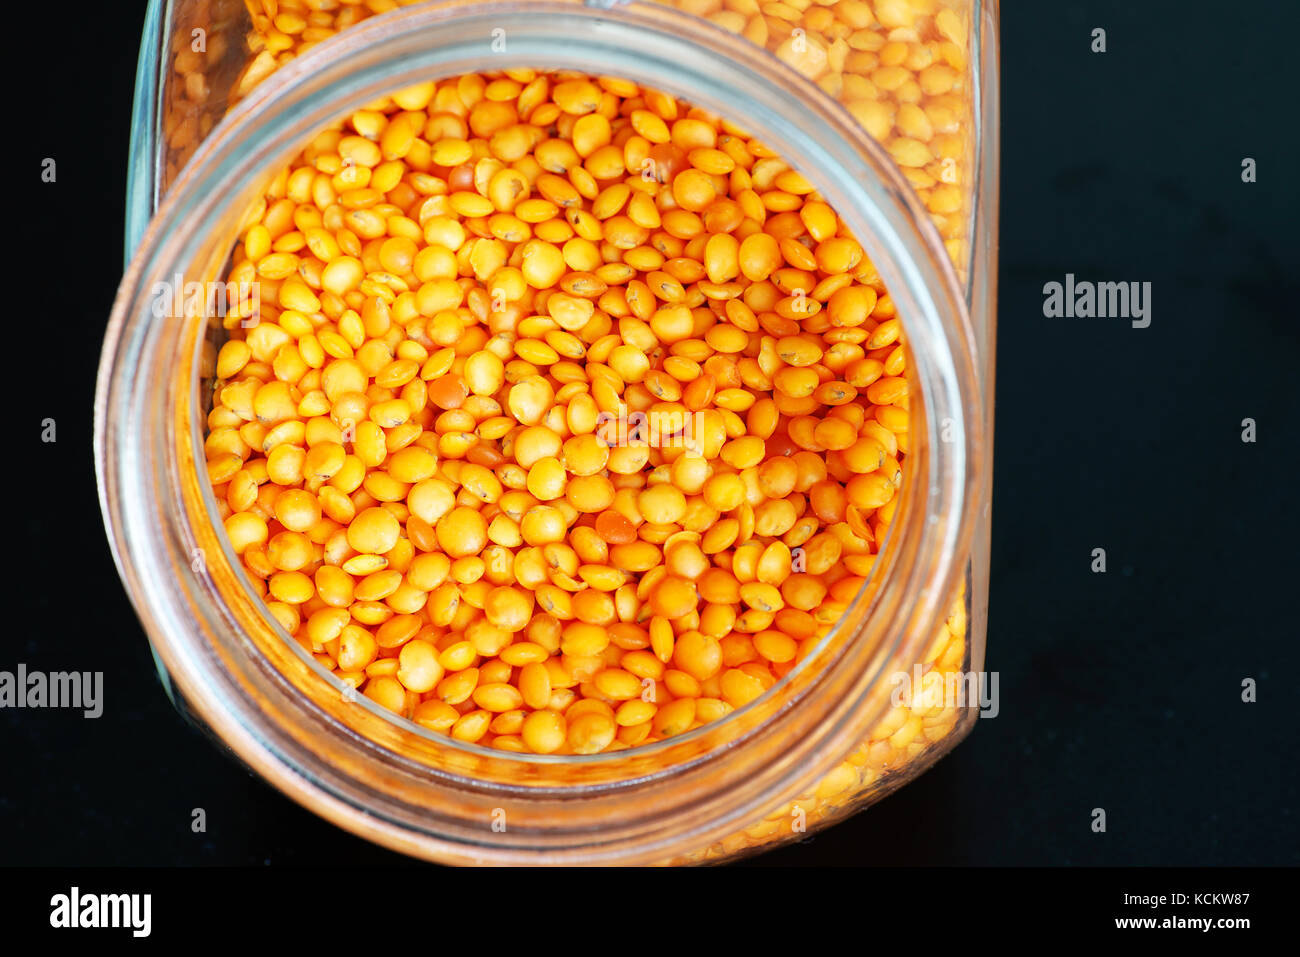 Vegetarian food in the glass for cooking, seasoning and refining - Stock Image